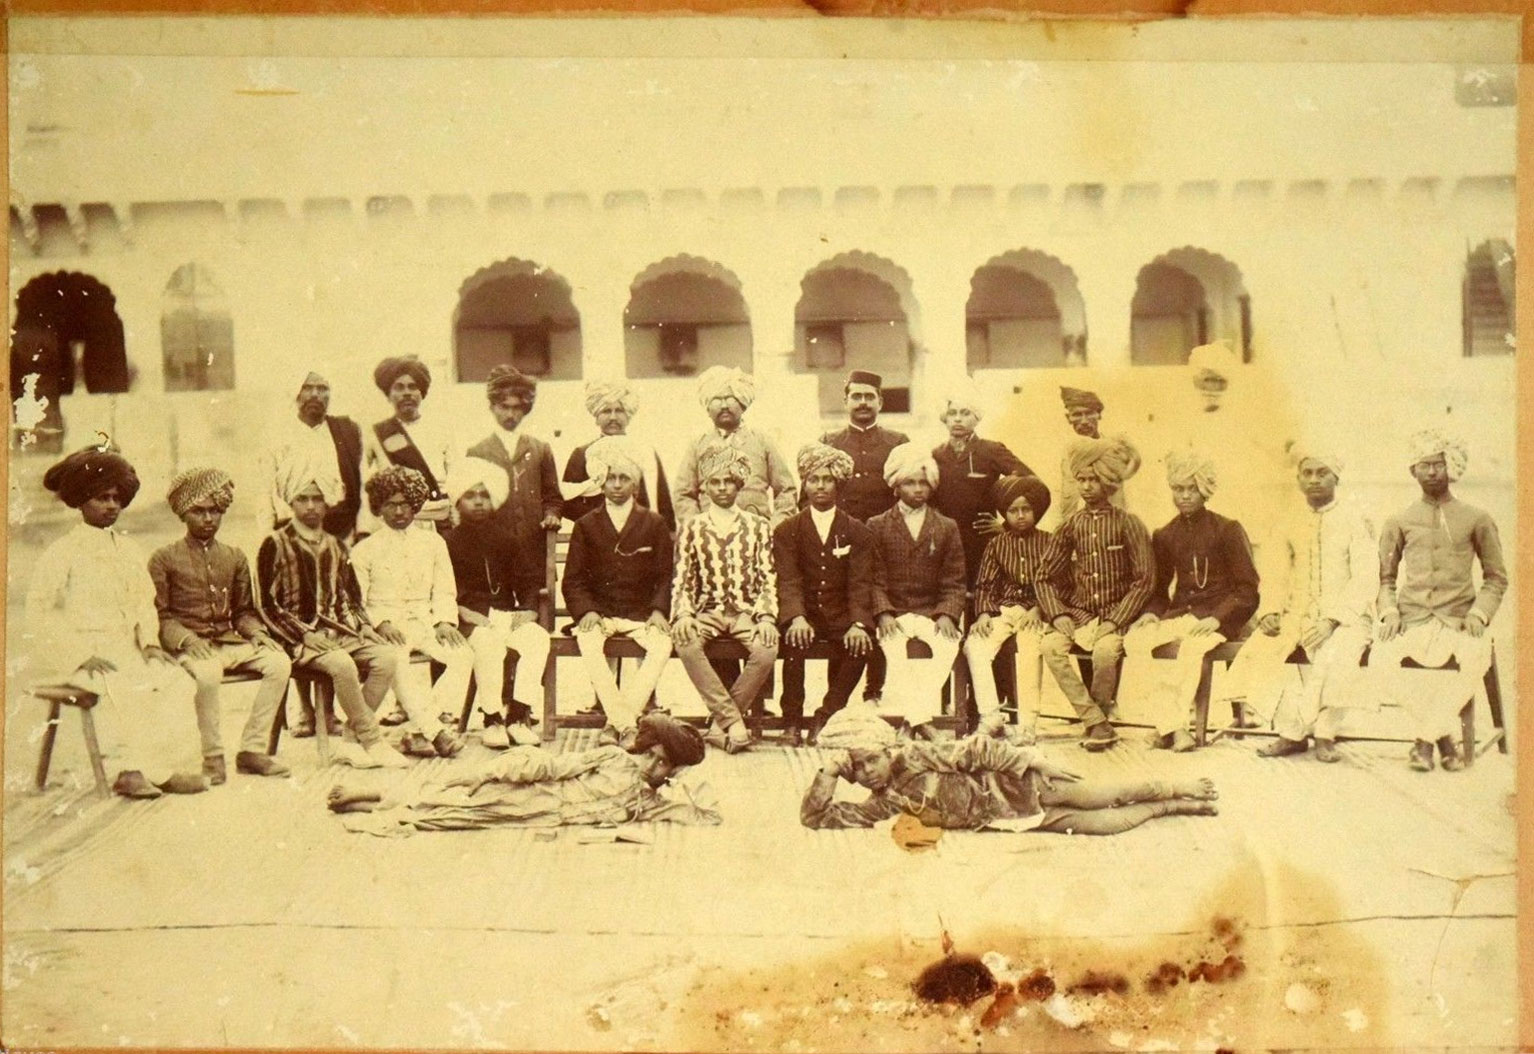 Group Photograph of Indian Men and Children